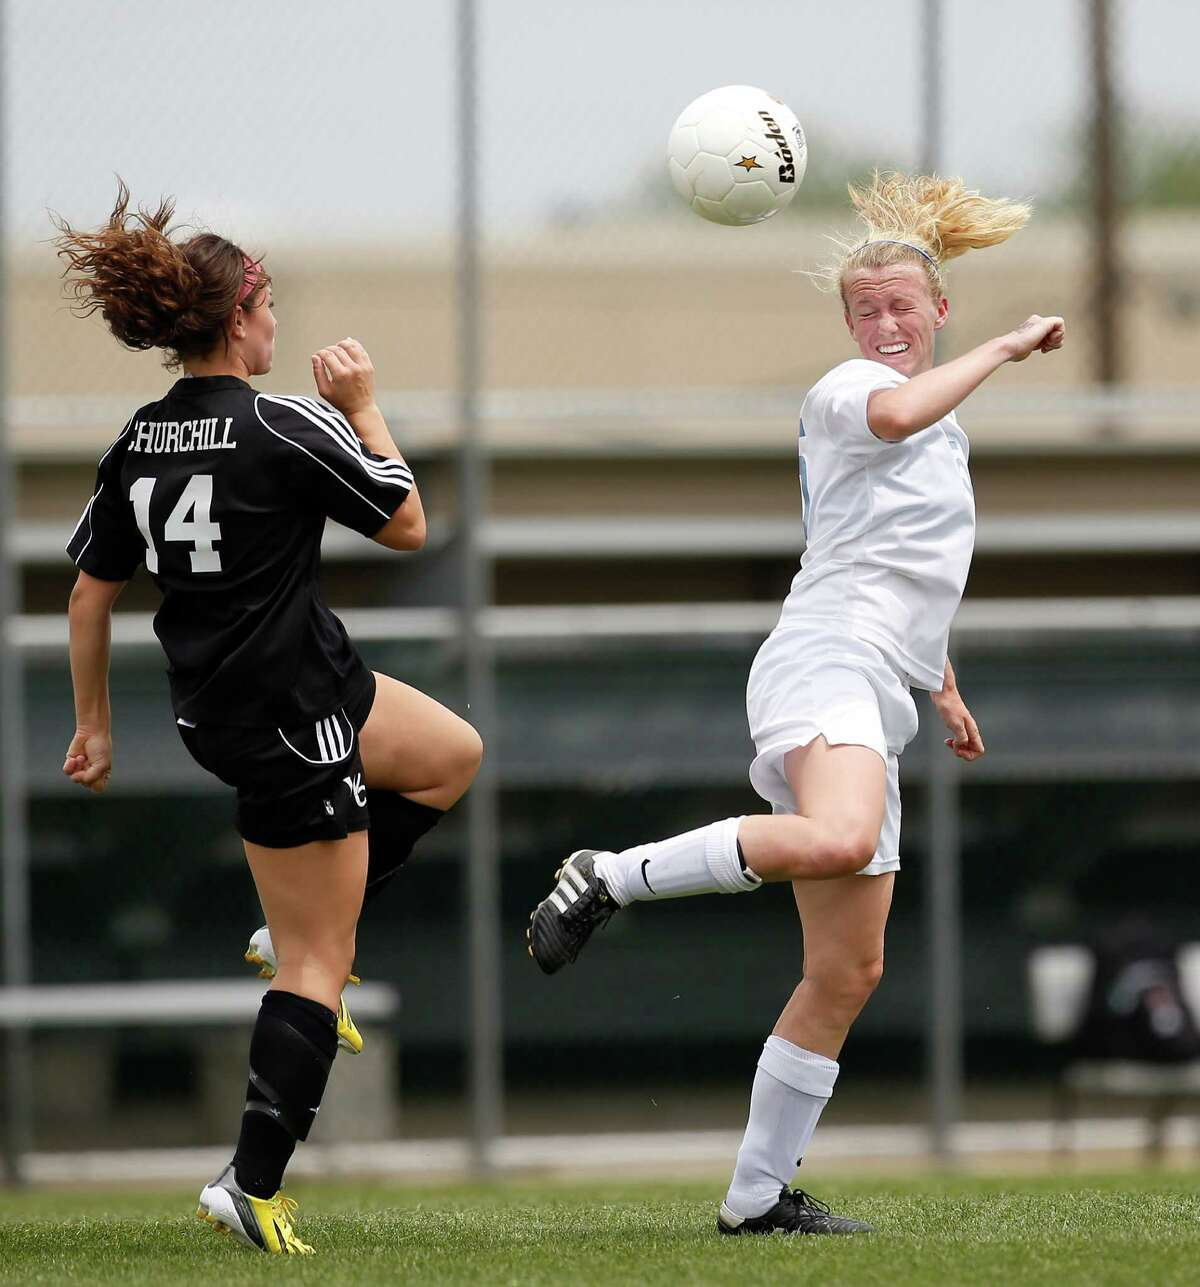 Johnson's Madelyn Carter, right, heads the ball as Churchill's Rachel Gurinsky defends during game action of the Region IV-5A girls final at the North East Soccer Stadium on Saturday, April 13, 2013. MICHAEL MILLER / FOR THE EXPRESS-NEWS